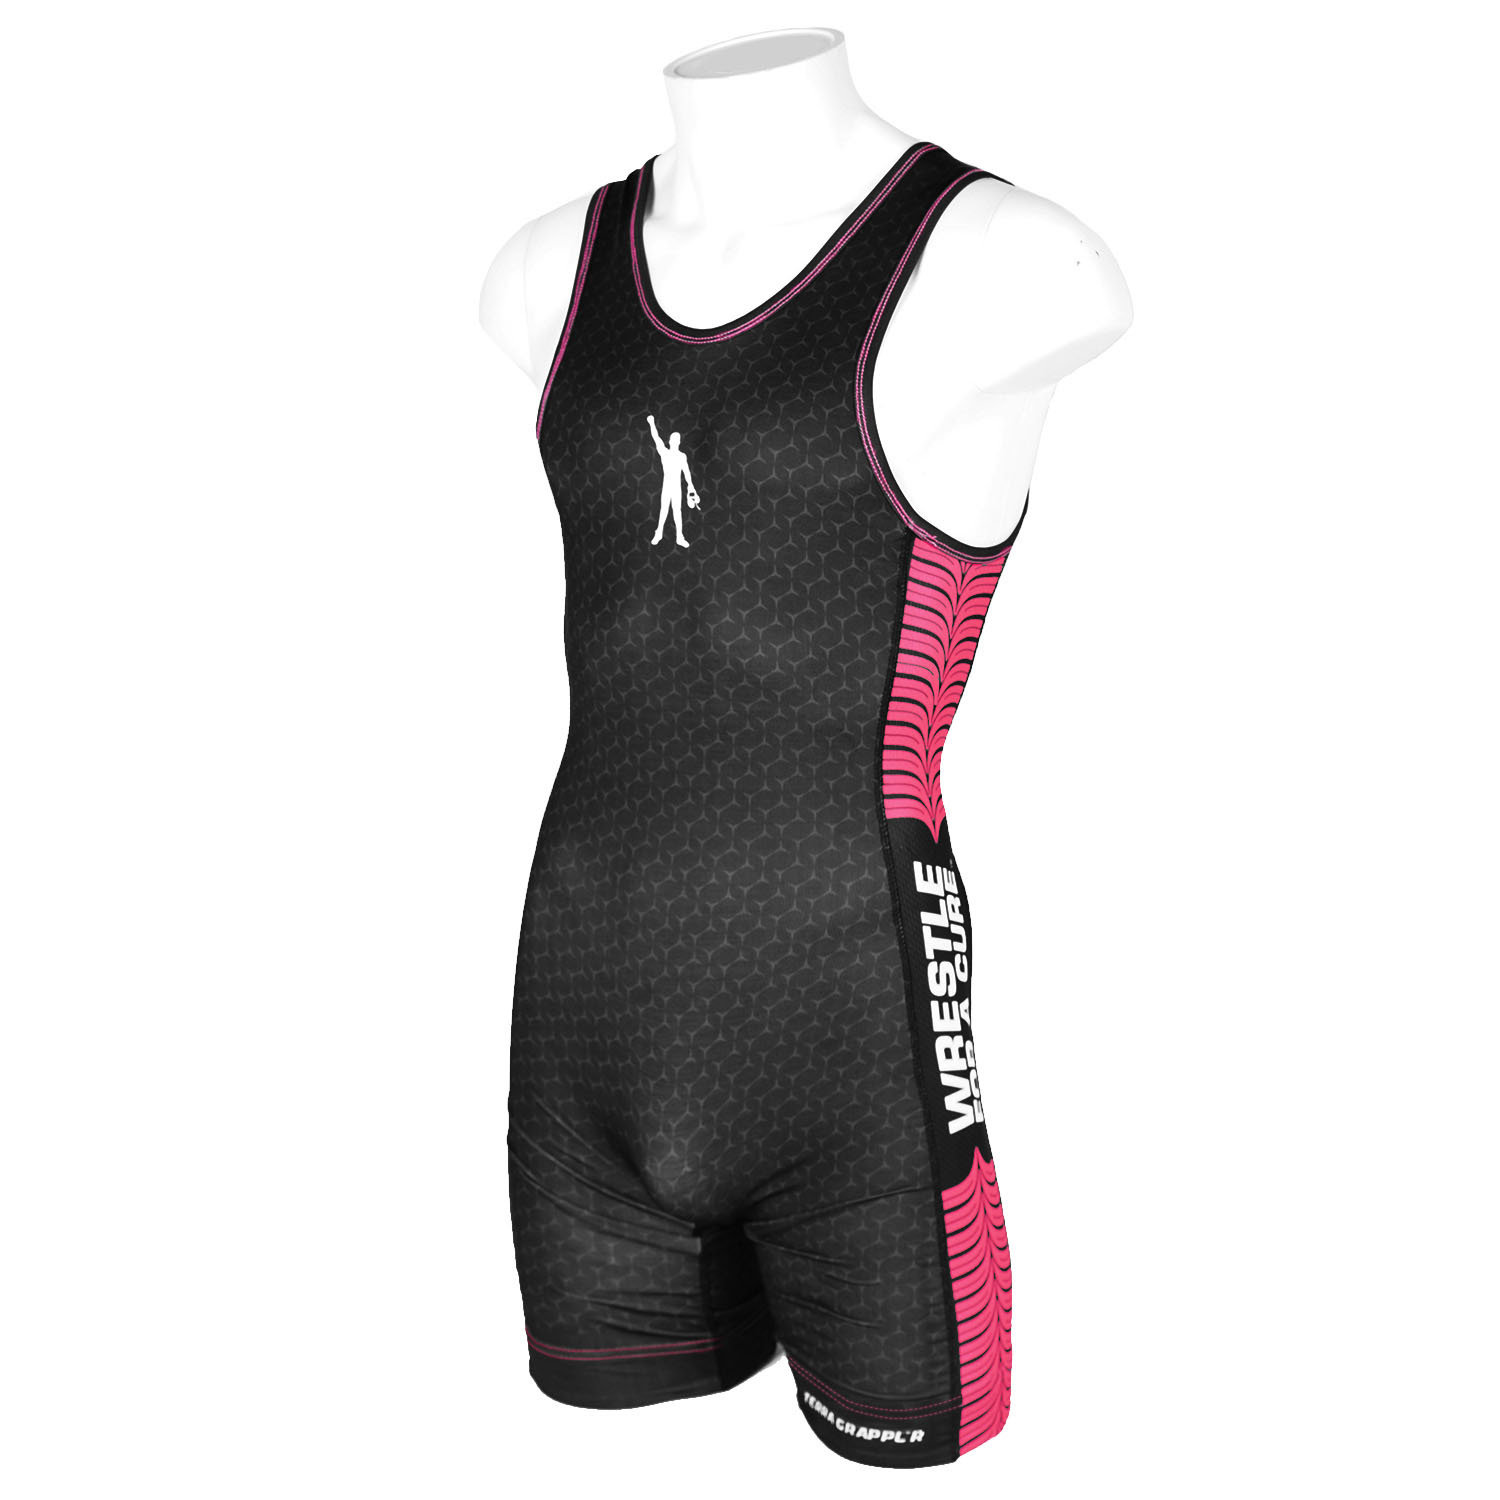 TG Pin Cancer Singlet (Limited Edition) 00004